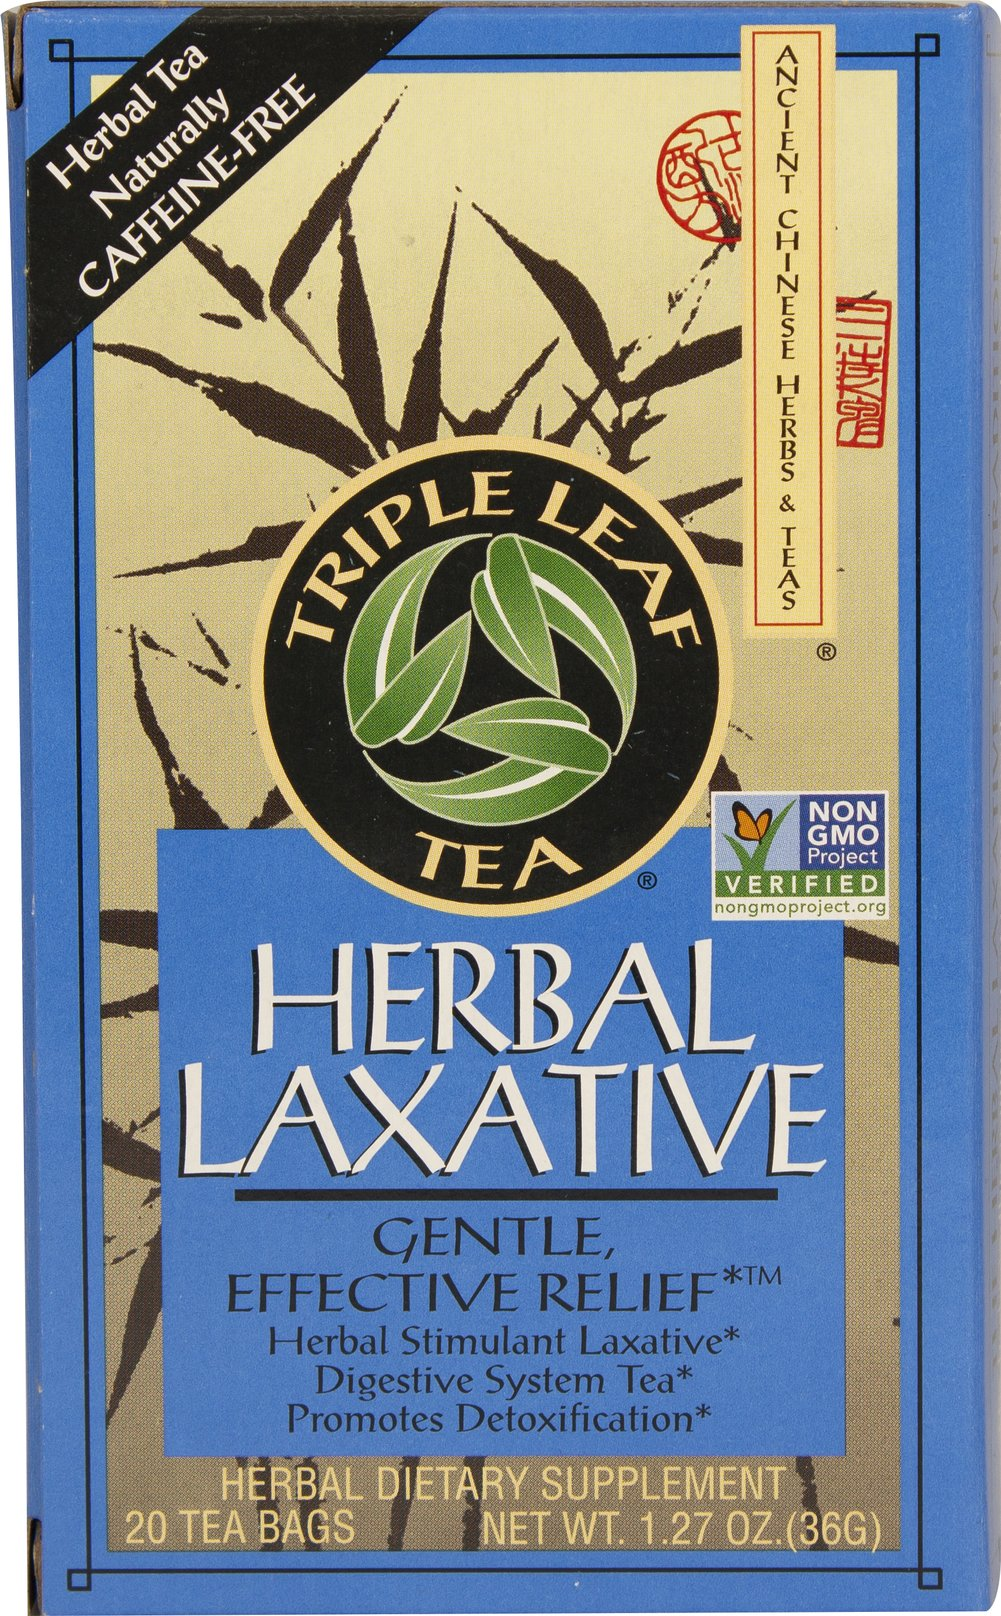 Herbal Laxative <p>Herbal Laxative Tablets is based on traditional use for the relief of occasional constipation.** Our formula brings together holistic properties to help promote regularity.** Herbal Laxative Tablets contain no harsh synthetics, so you can be assured of gentle, yet efficient, cleansing.**</p><p></p><p>Also available in Capsules. See items 2180, 2183 and 2185.</p> 500 Tablets  $38.39